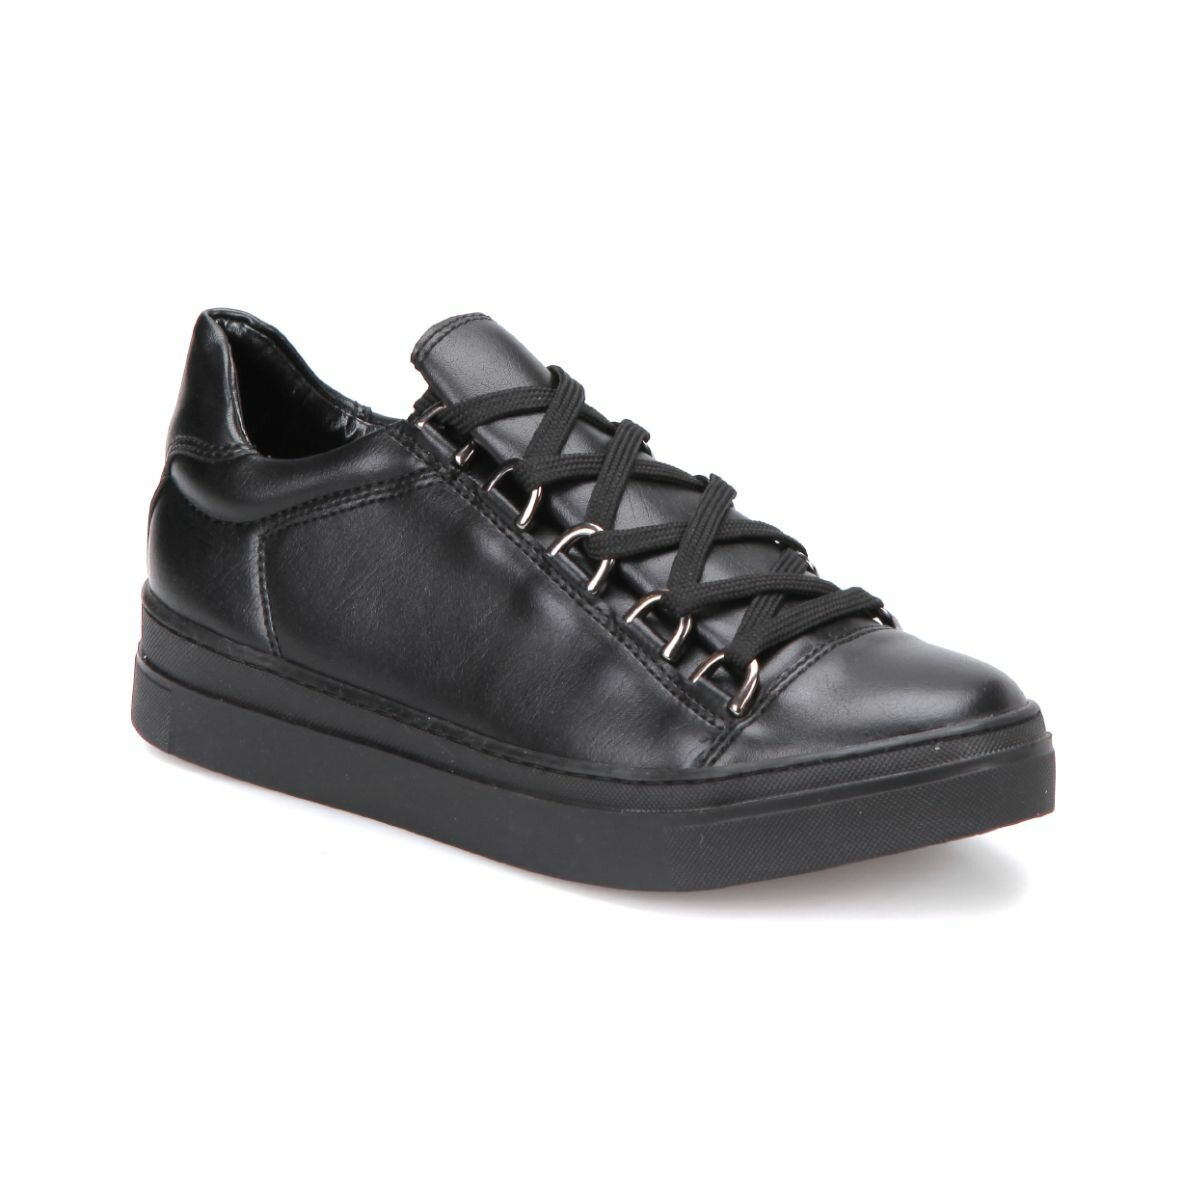 FLO CS18087 Black Women 'S Sneaker Shoes Art Bella